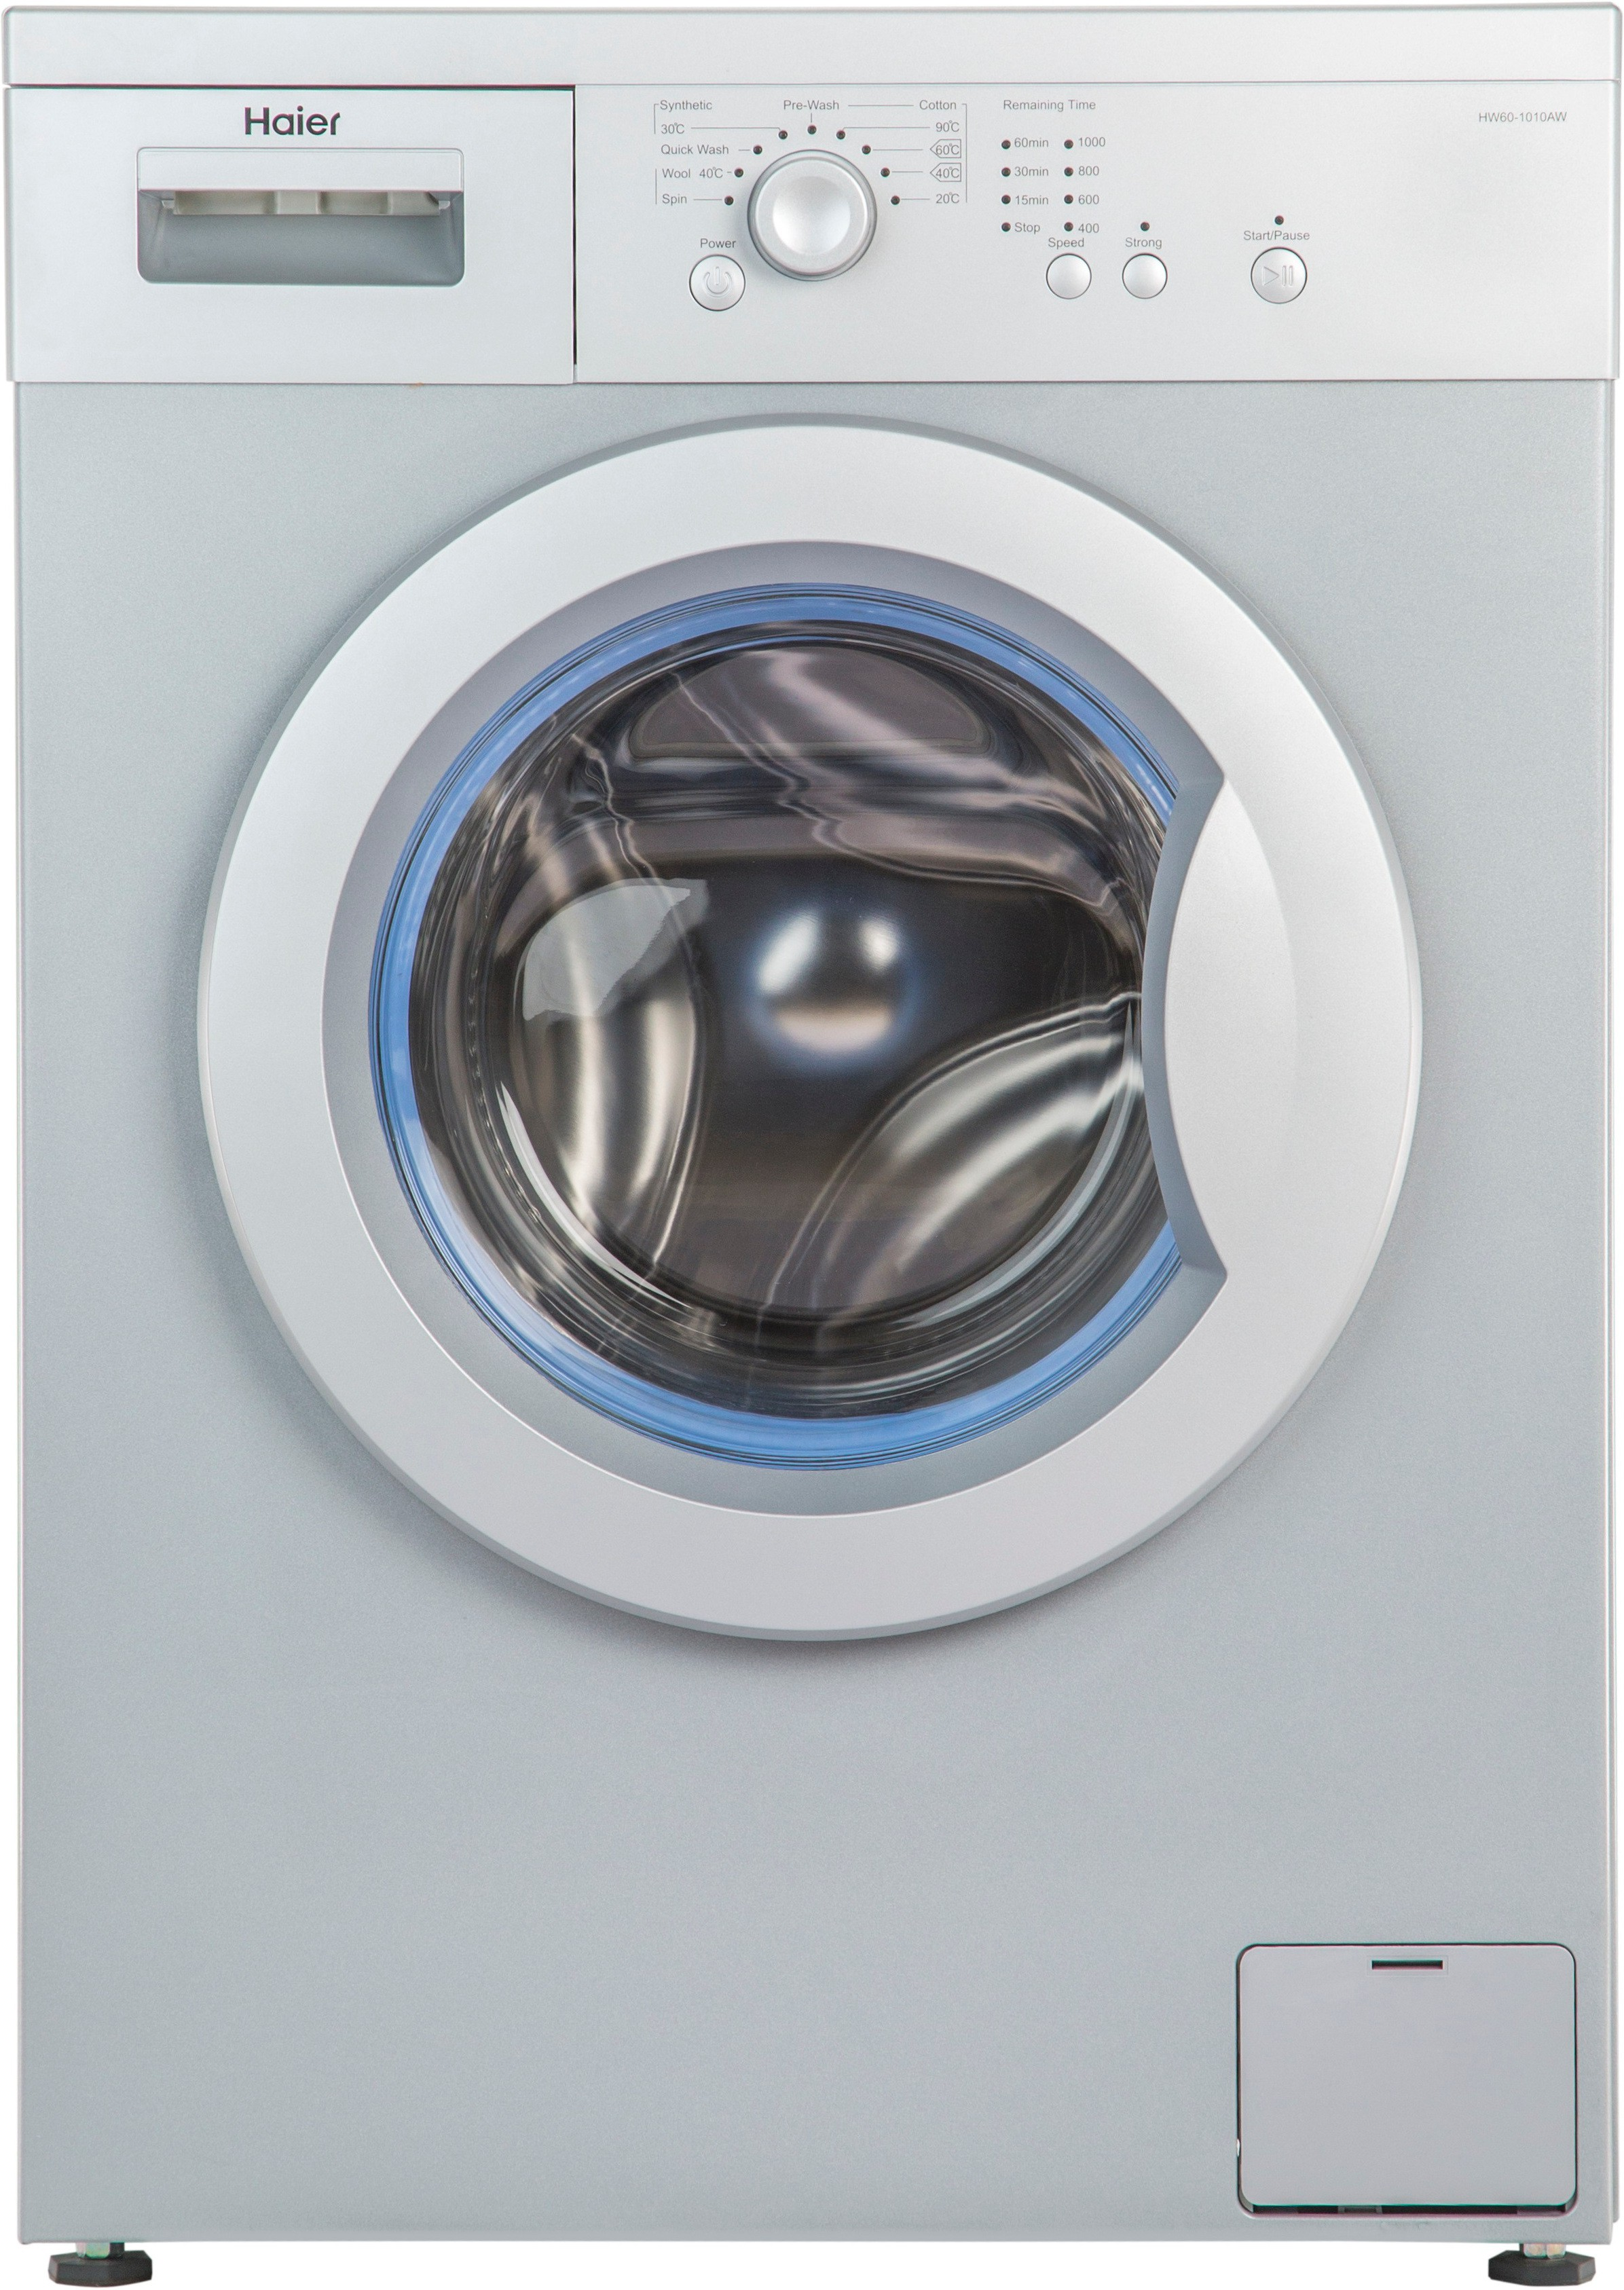 HAIER HW60-1010AW 6KG Fully Automatic Front Load Washing Machine